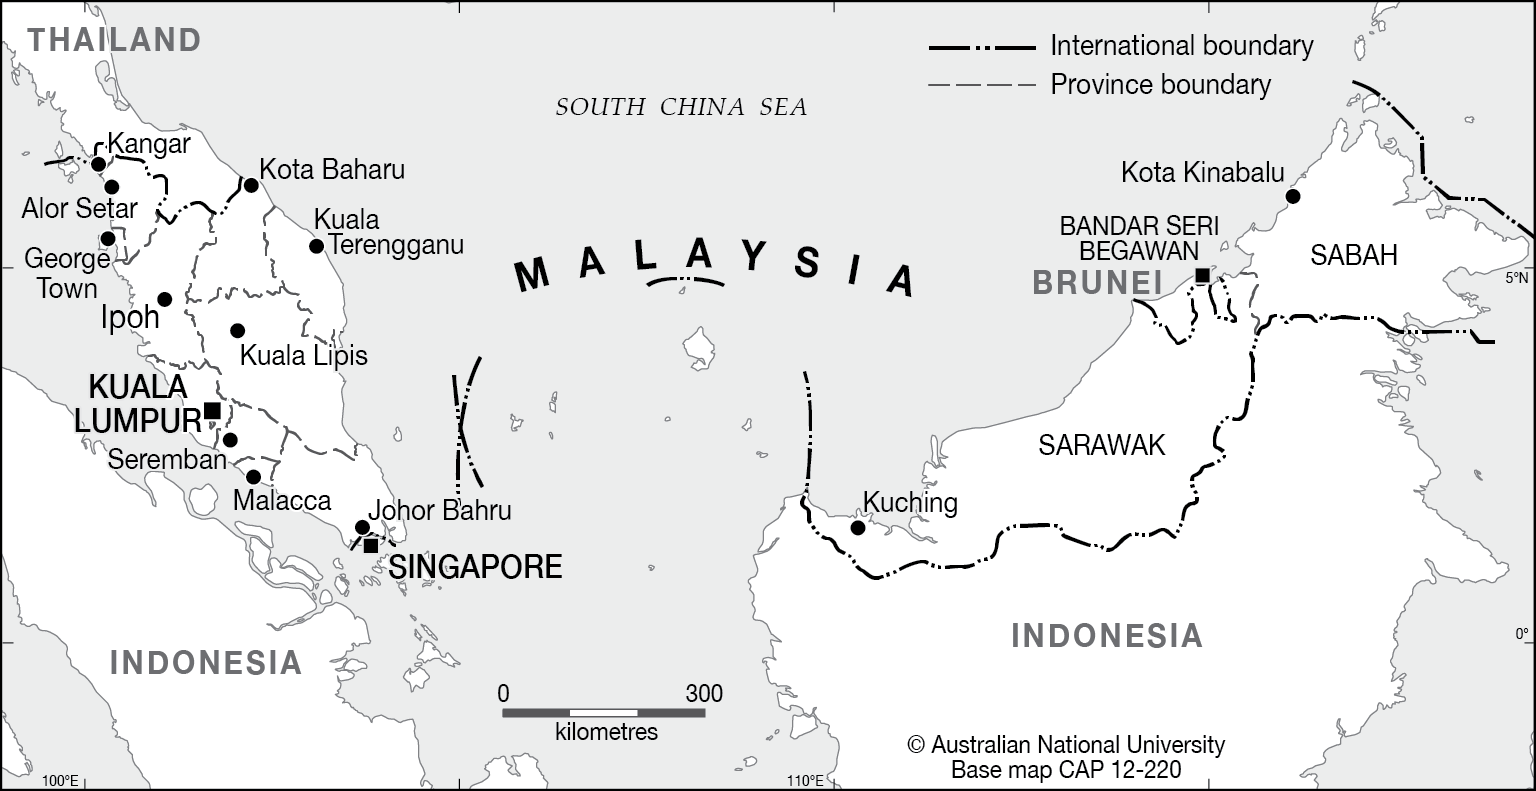 Malaysia base cartogis services maps online anu kb elevation map png 77426 kb gumiabroncs Gallery